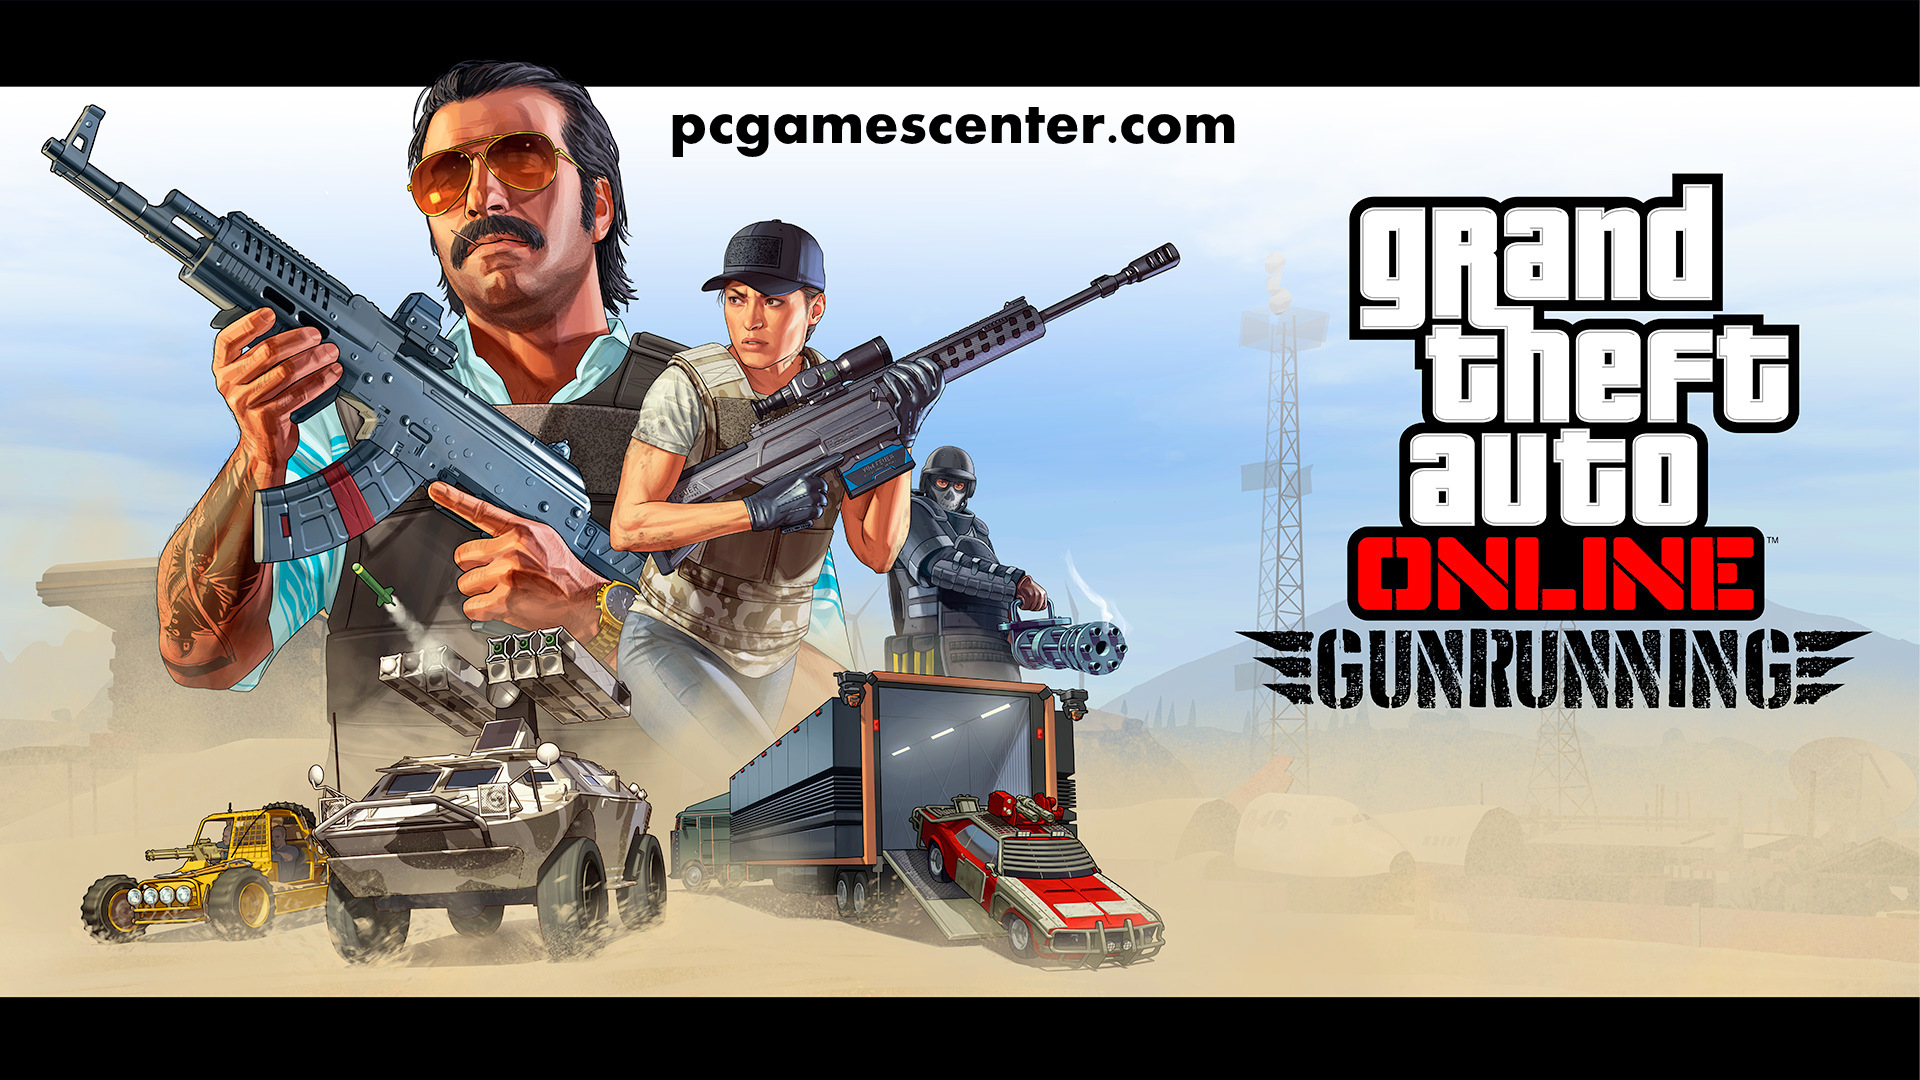 GTA 5 Online Gunrunning Pc Game Free Download